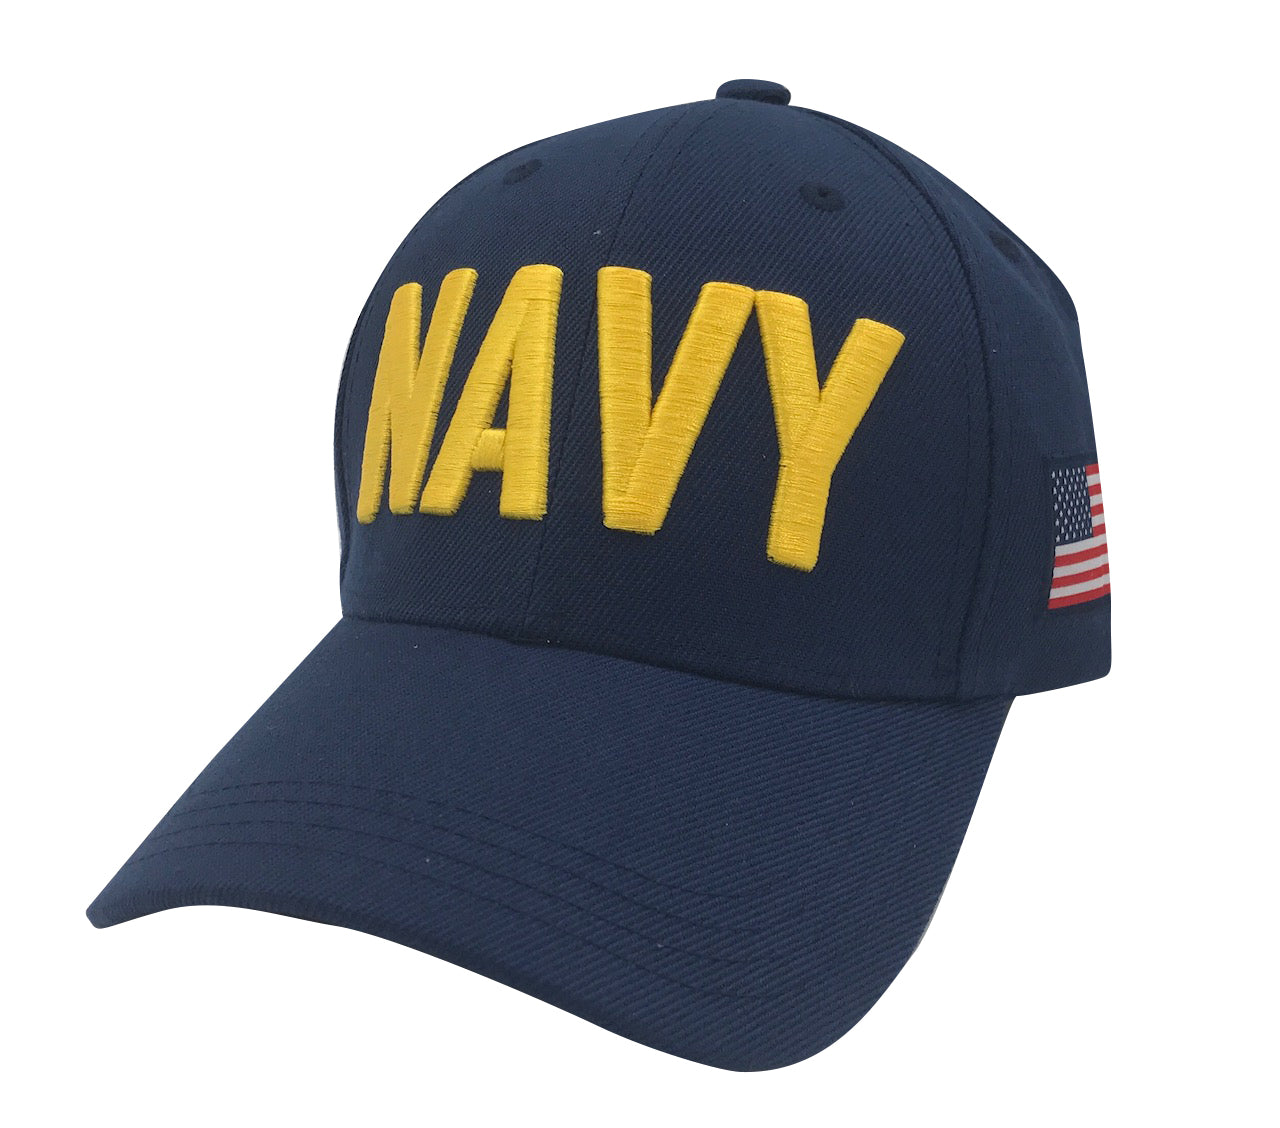 NAVY 3D Embroidery Acrylic Cap - Navy by Icon Sports